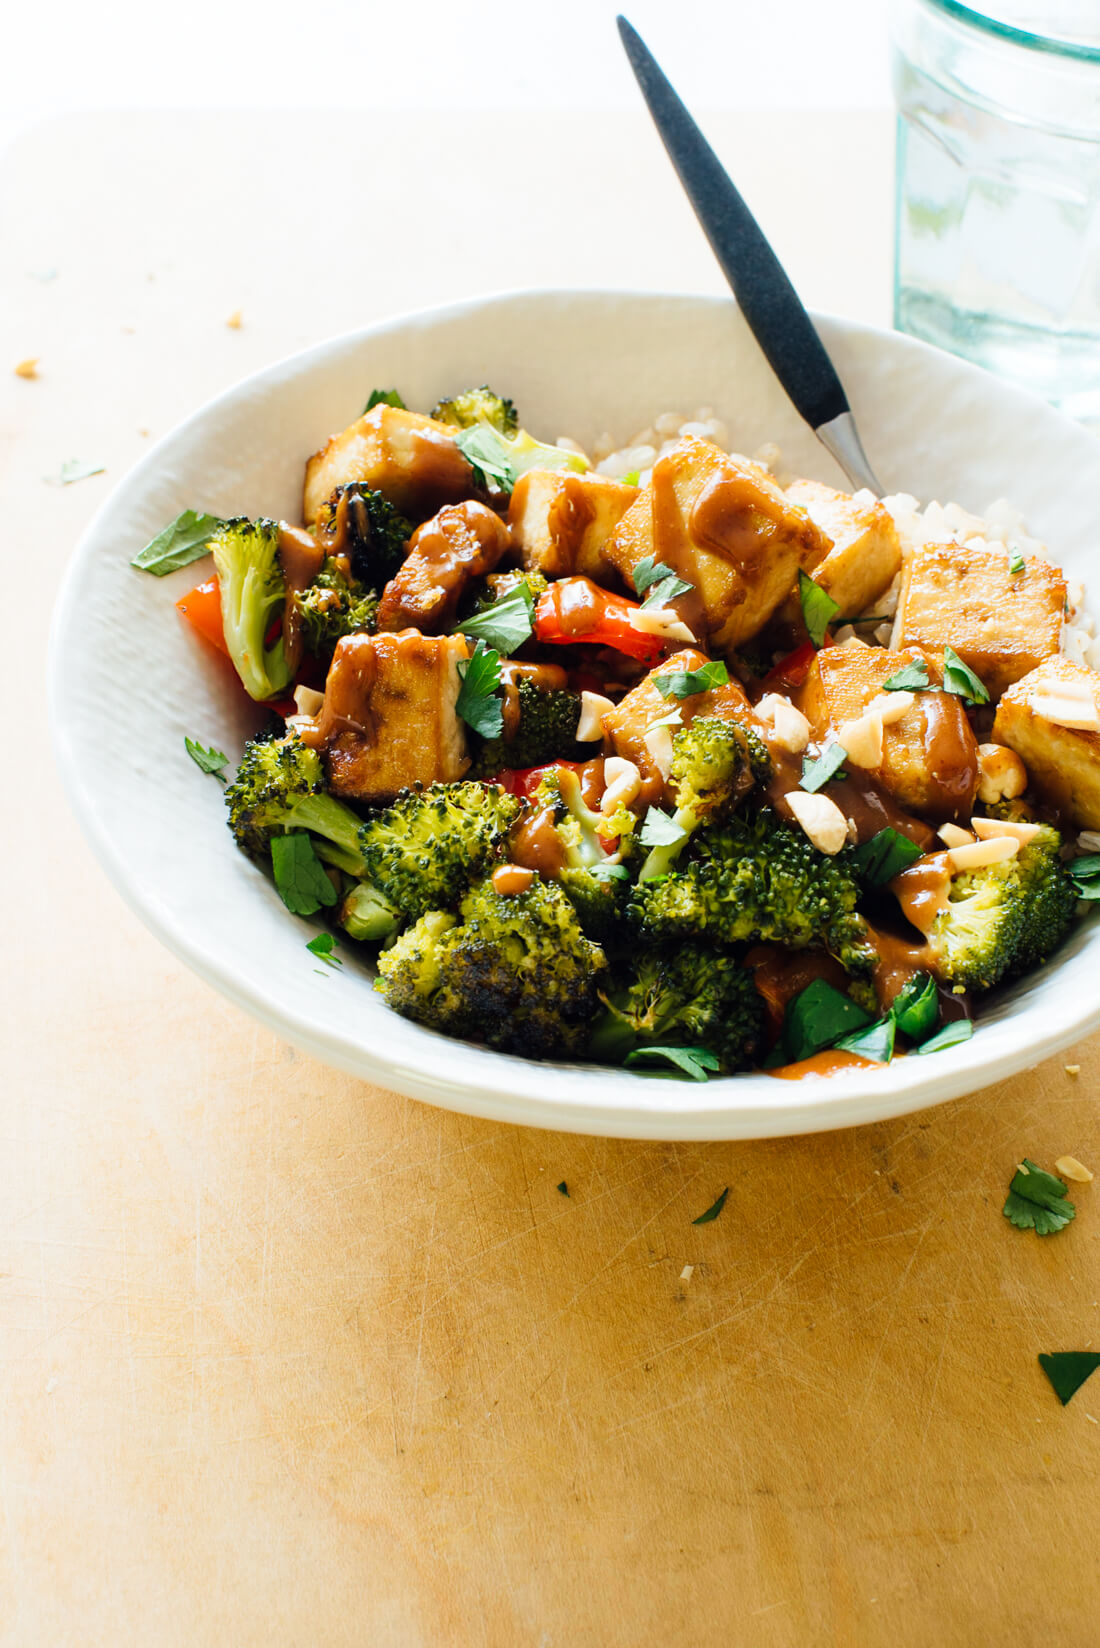 Roasted Broccoli, Bell Pepper, and Tofu Bowl with Peanut Sauce